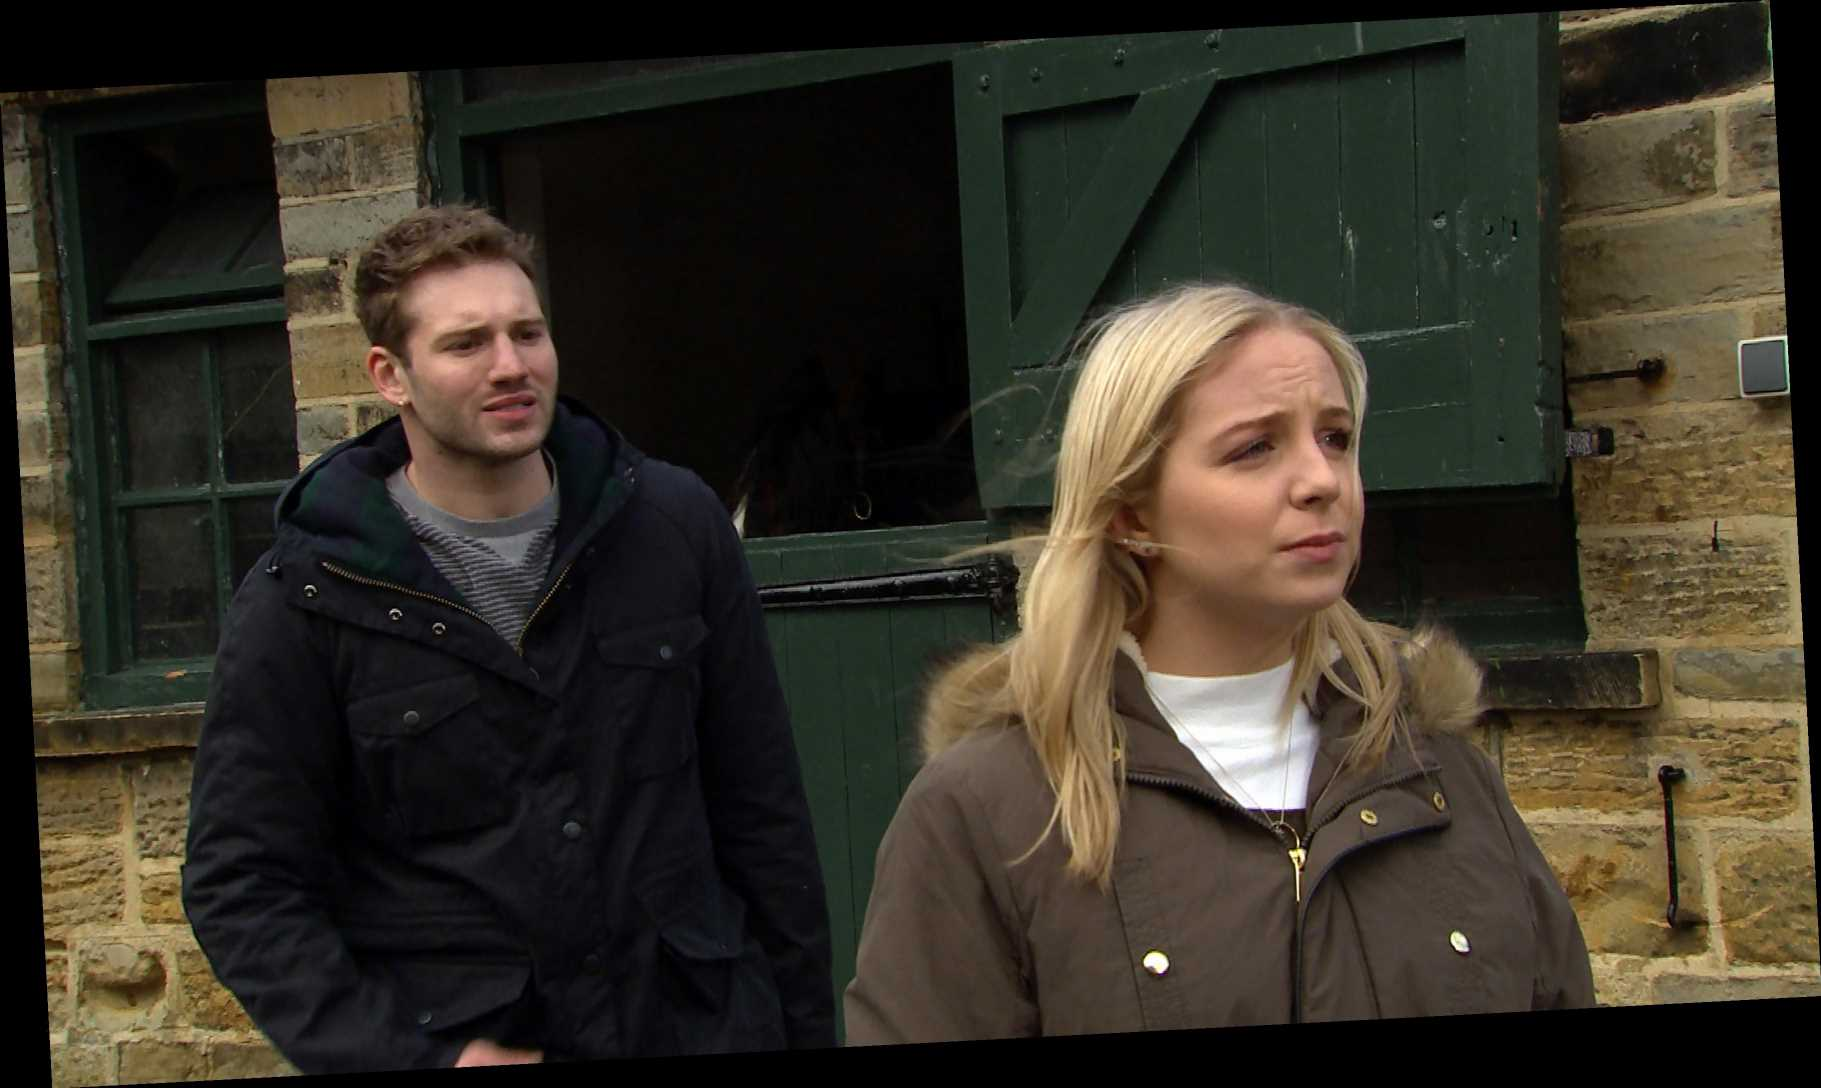 10 Emmerdale spoilers next week- Billy is set up by Malone and Jamie persuades Paddy to fire Belle